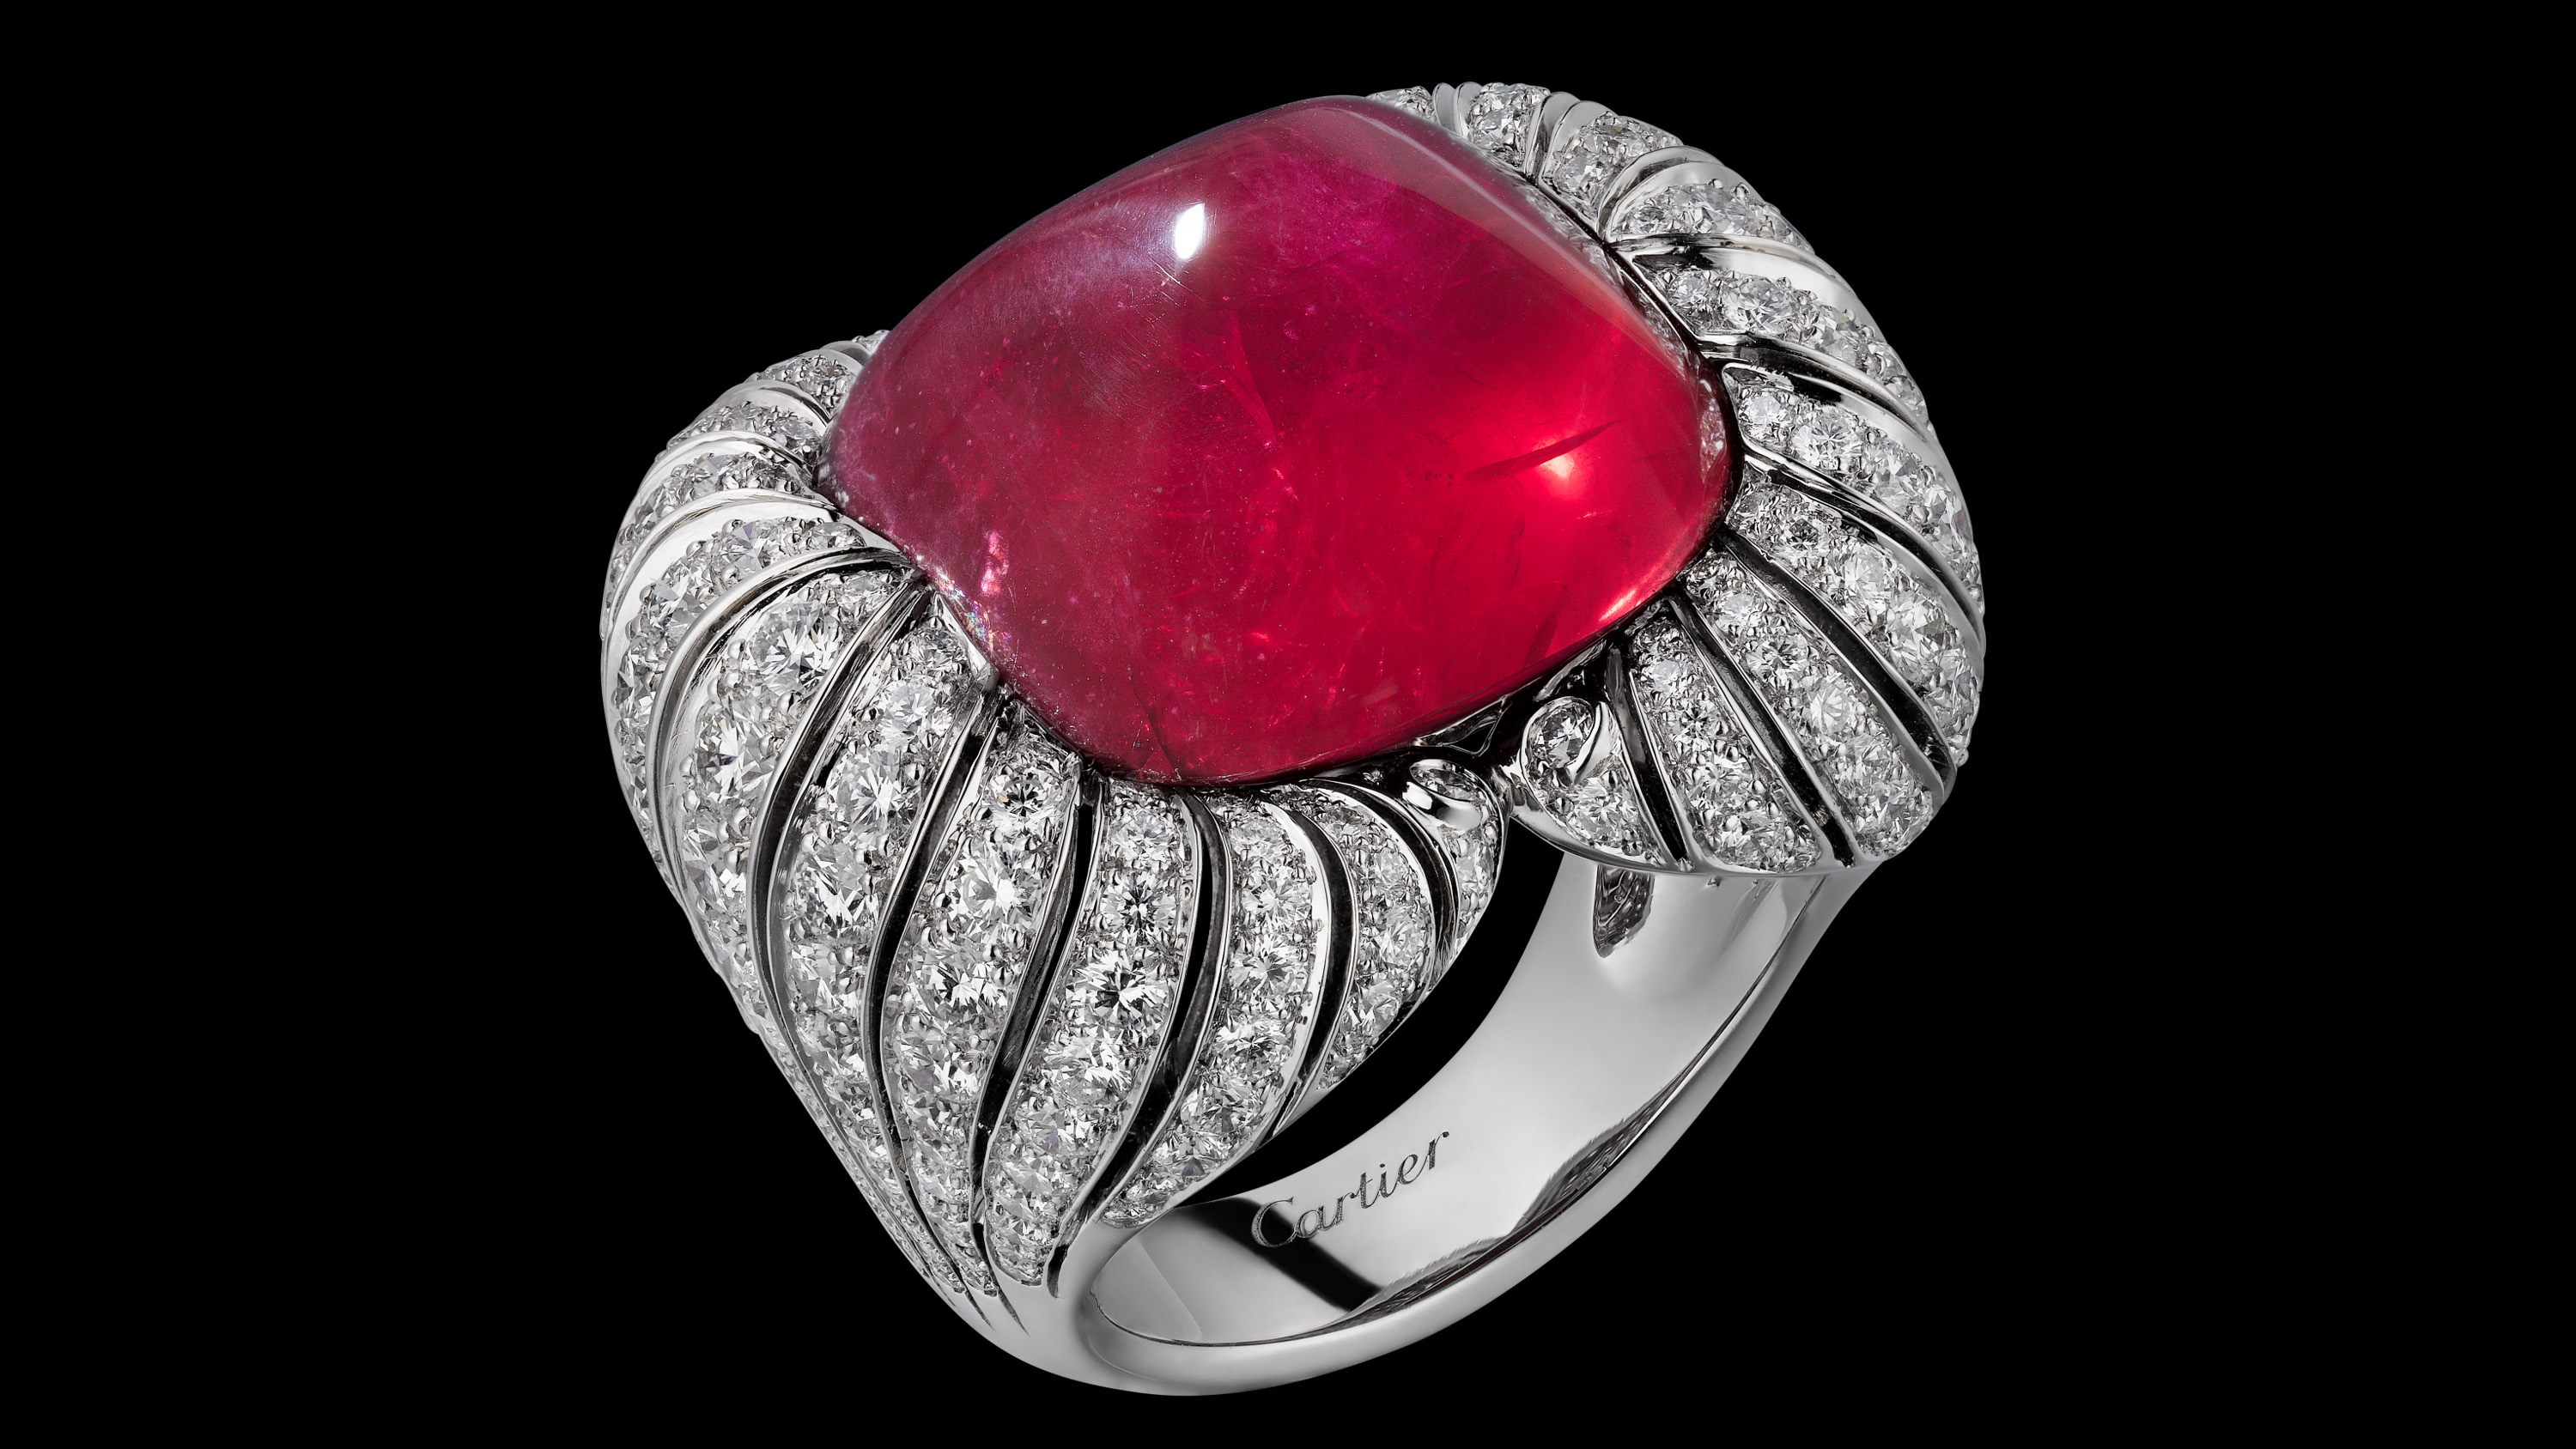 stone air gemstone polished crystals salt ruby polishedruby product